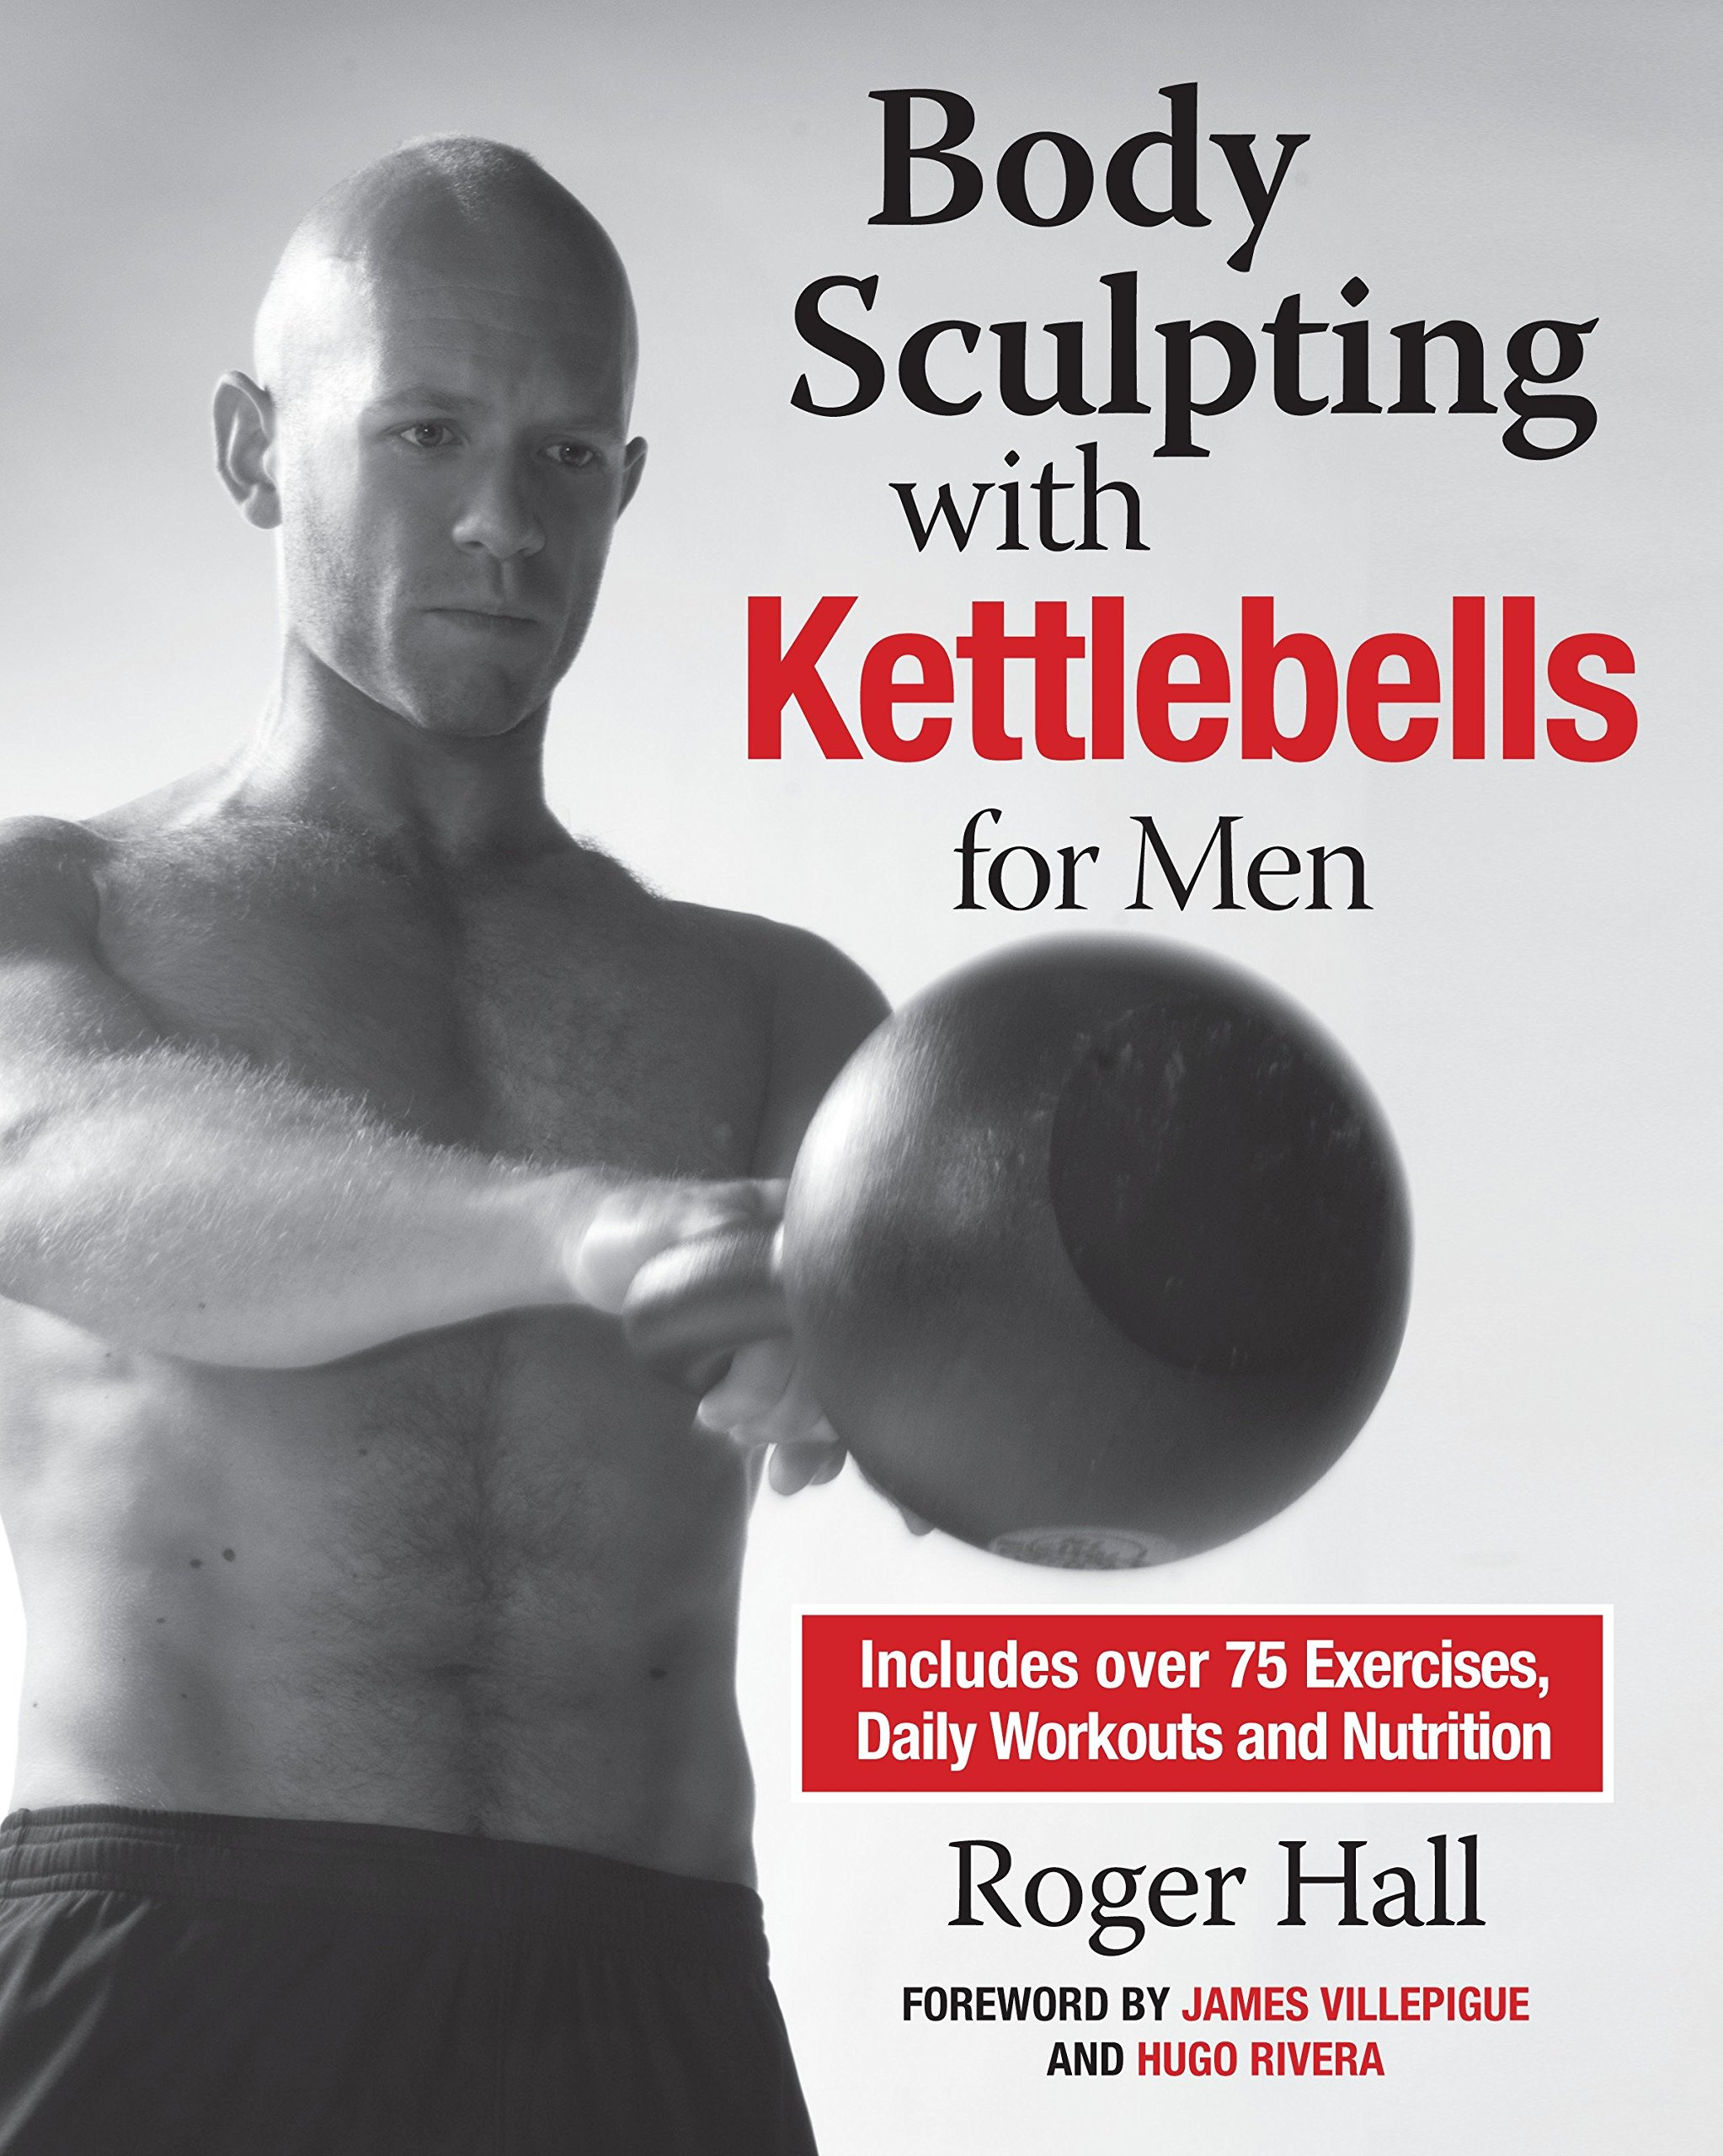 Download Body Sculpting with Kettlebells for Men: The Complete Strength and Conditioning Plan - Includes Over 75 Exercises plus Daily Workouts and Nutrition for Maximum Results (Body Sculpting Bible) PDF